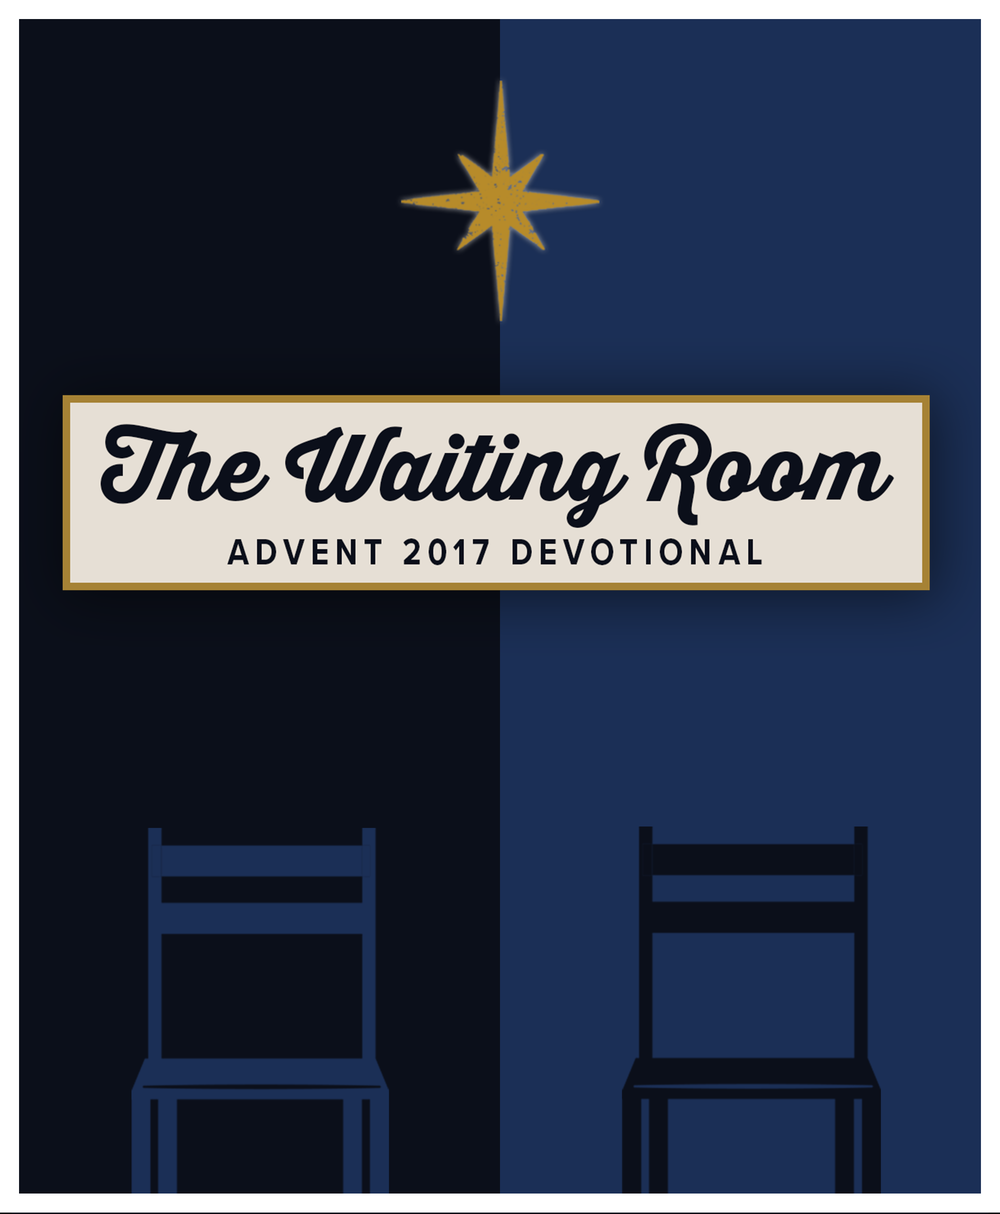 The Waiting Room - Advent Devotional Cover 2017.png